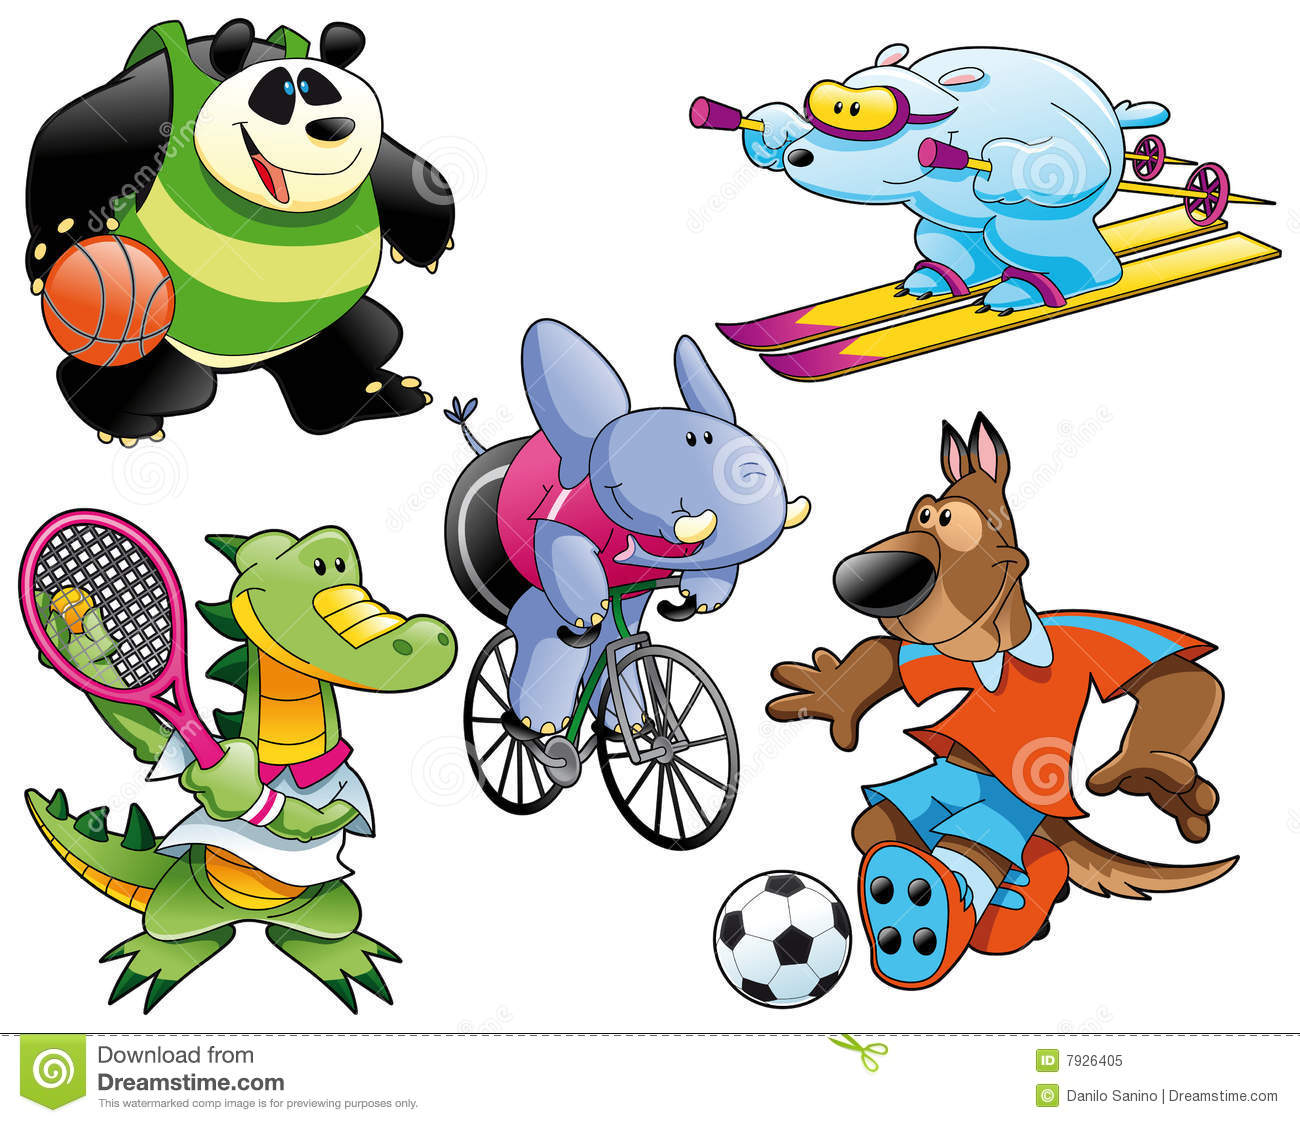 Sport and Animal: panda, polar bear, dog, crocodile and elephant.